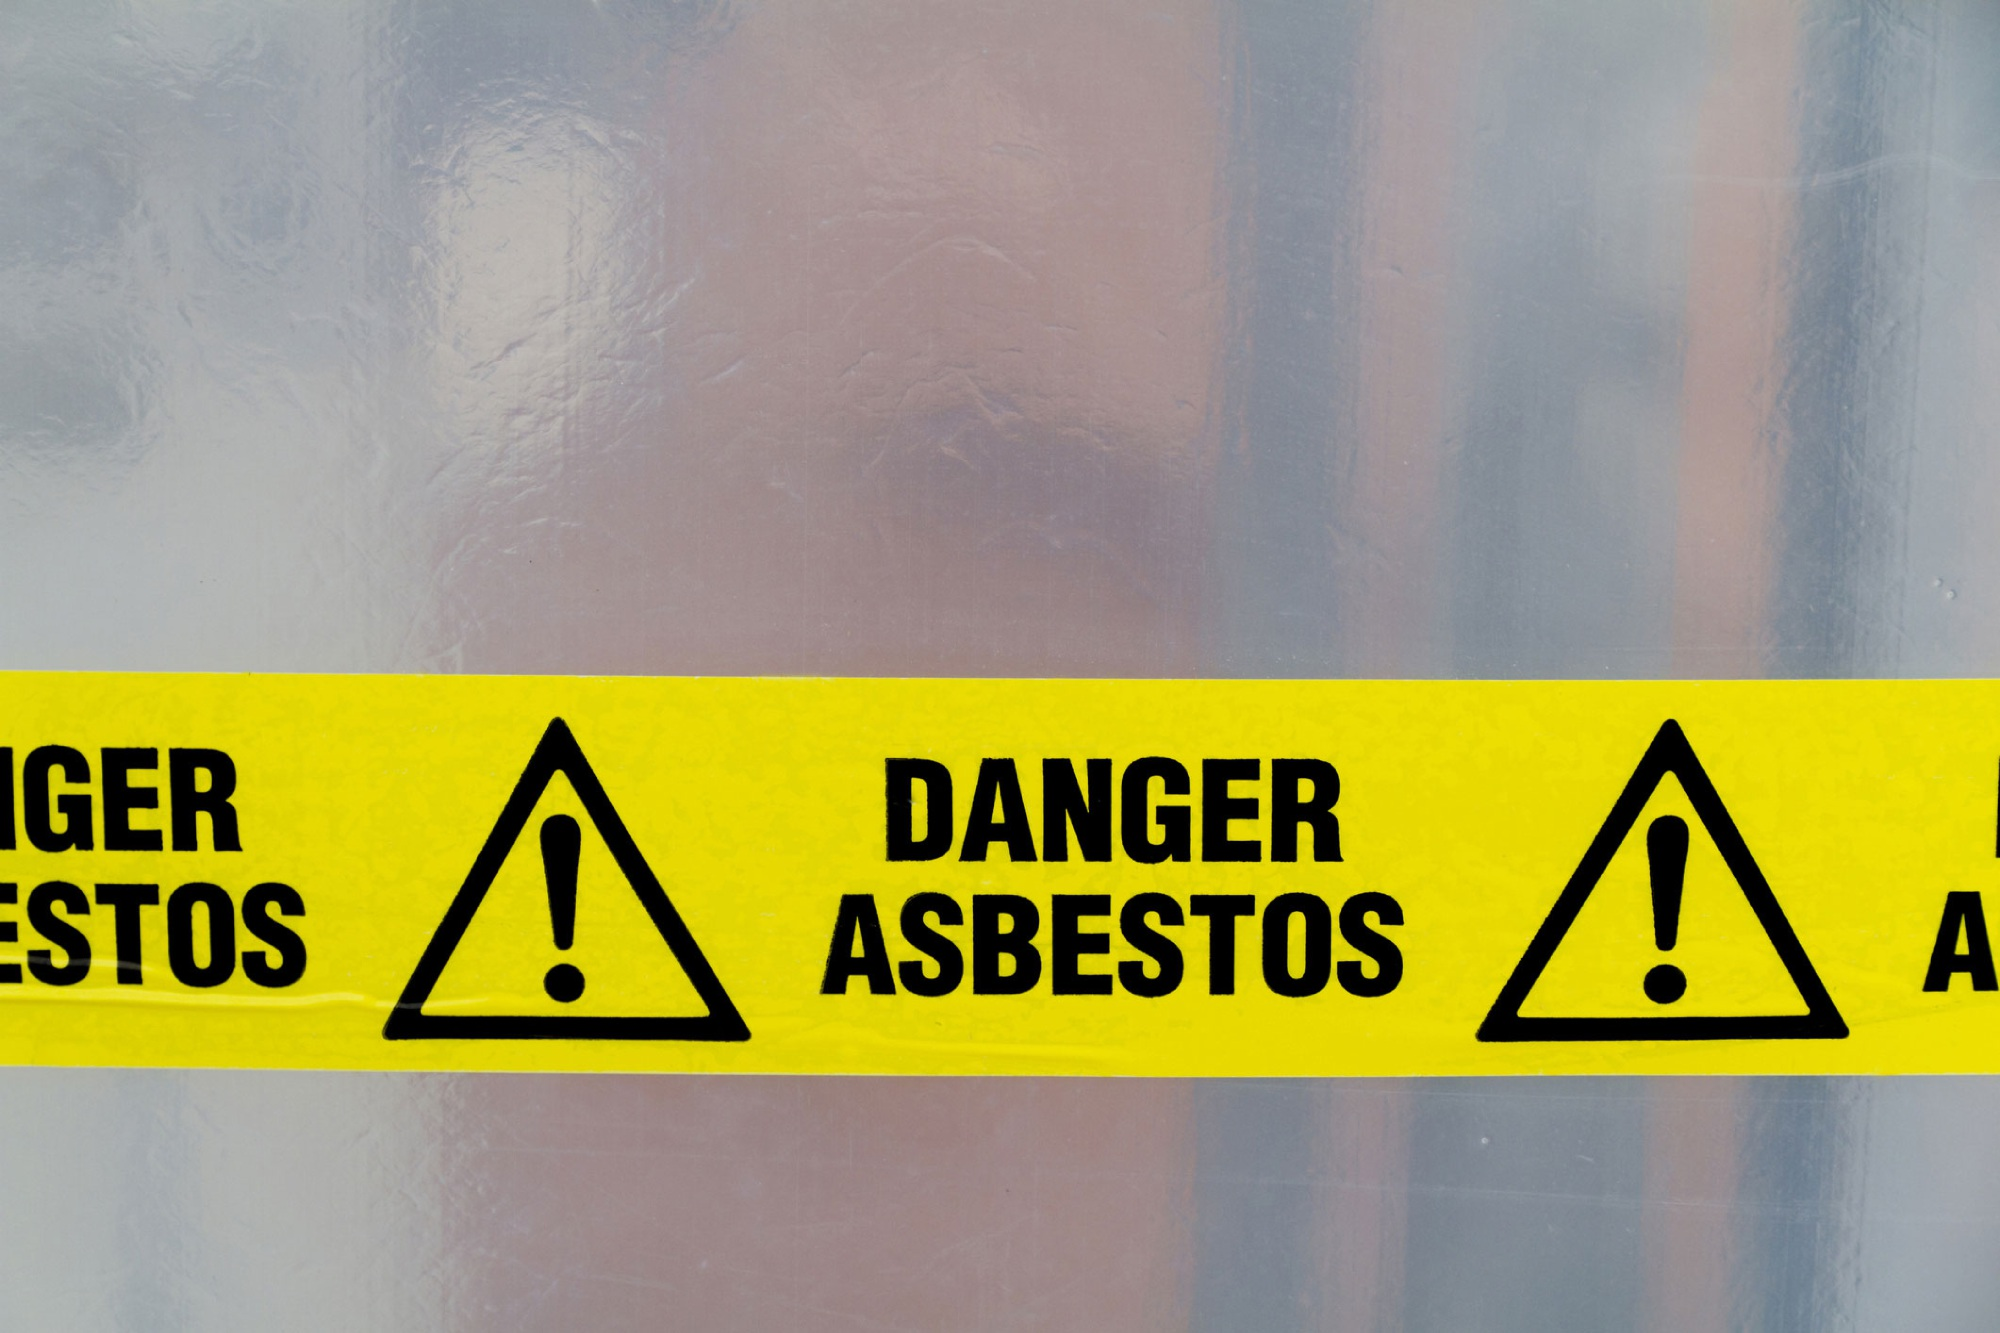 Enough of the asbestos fearmongering, time to work towards solutions.